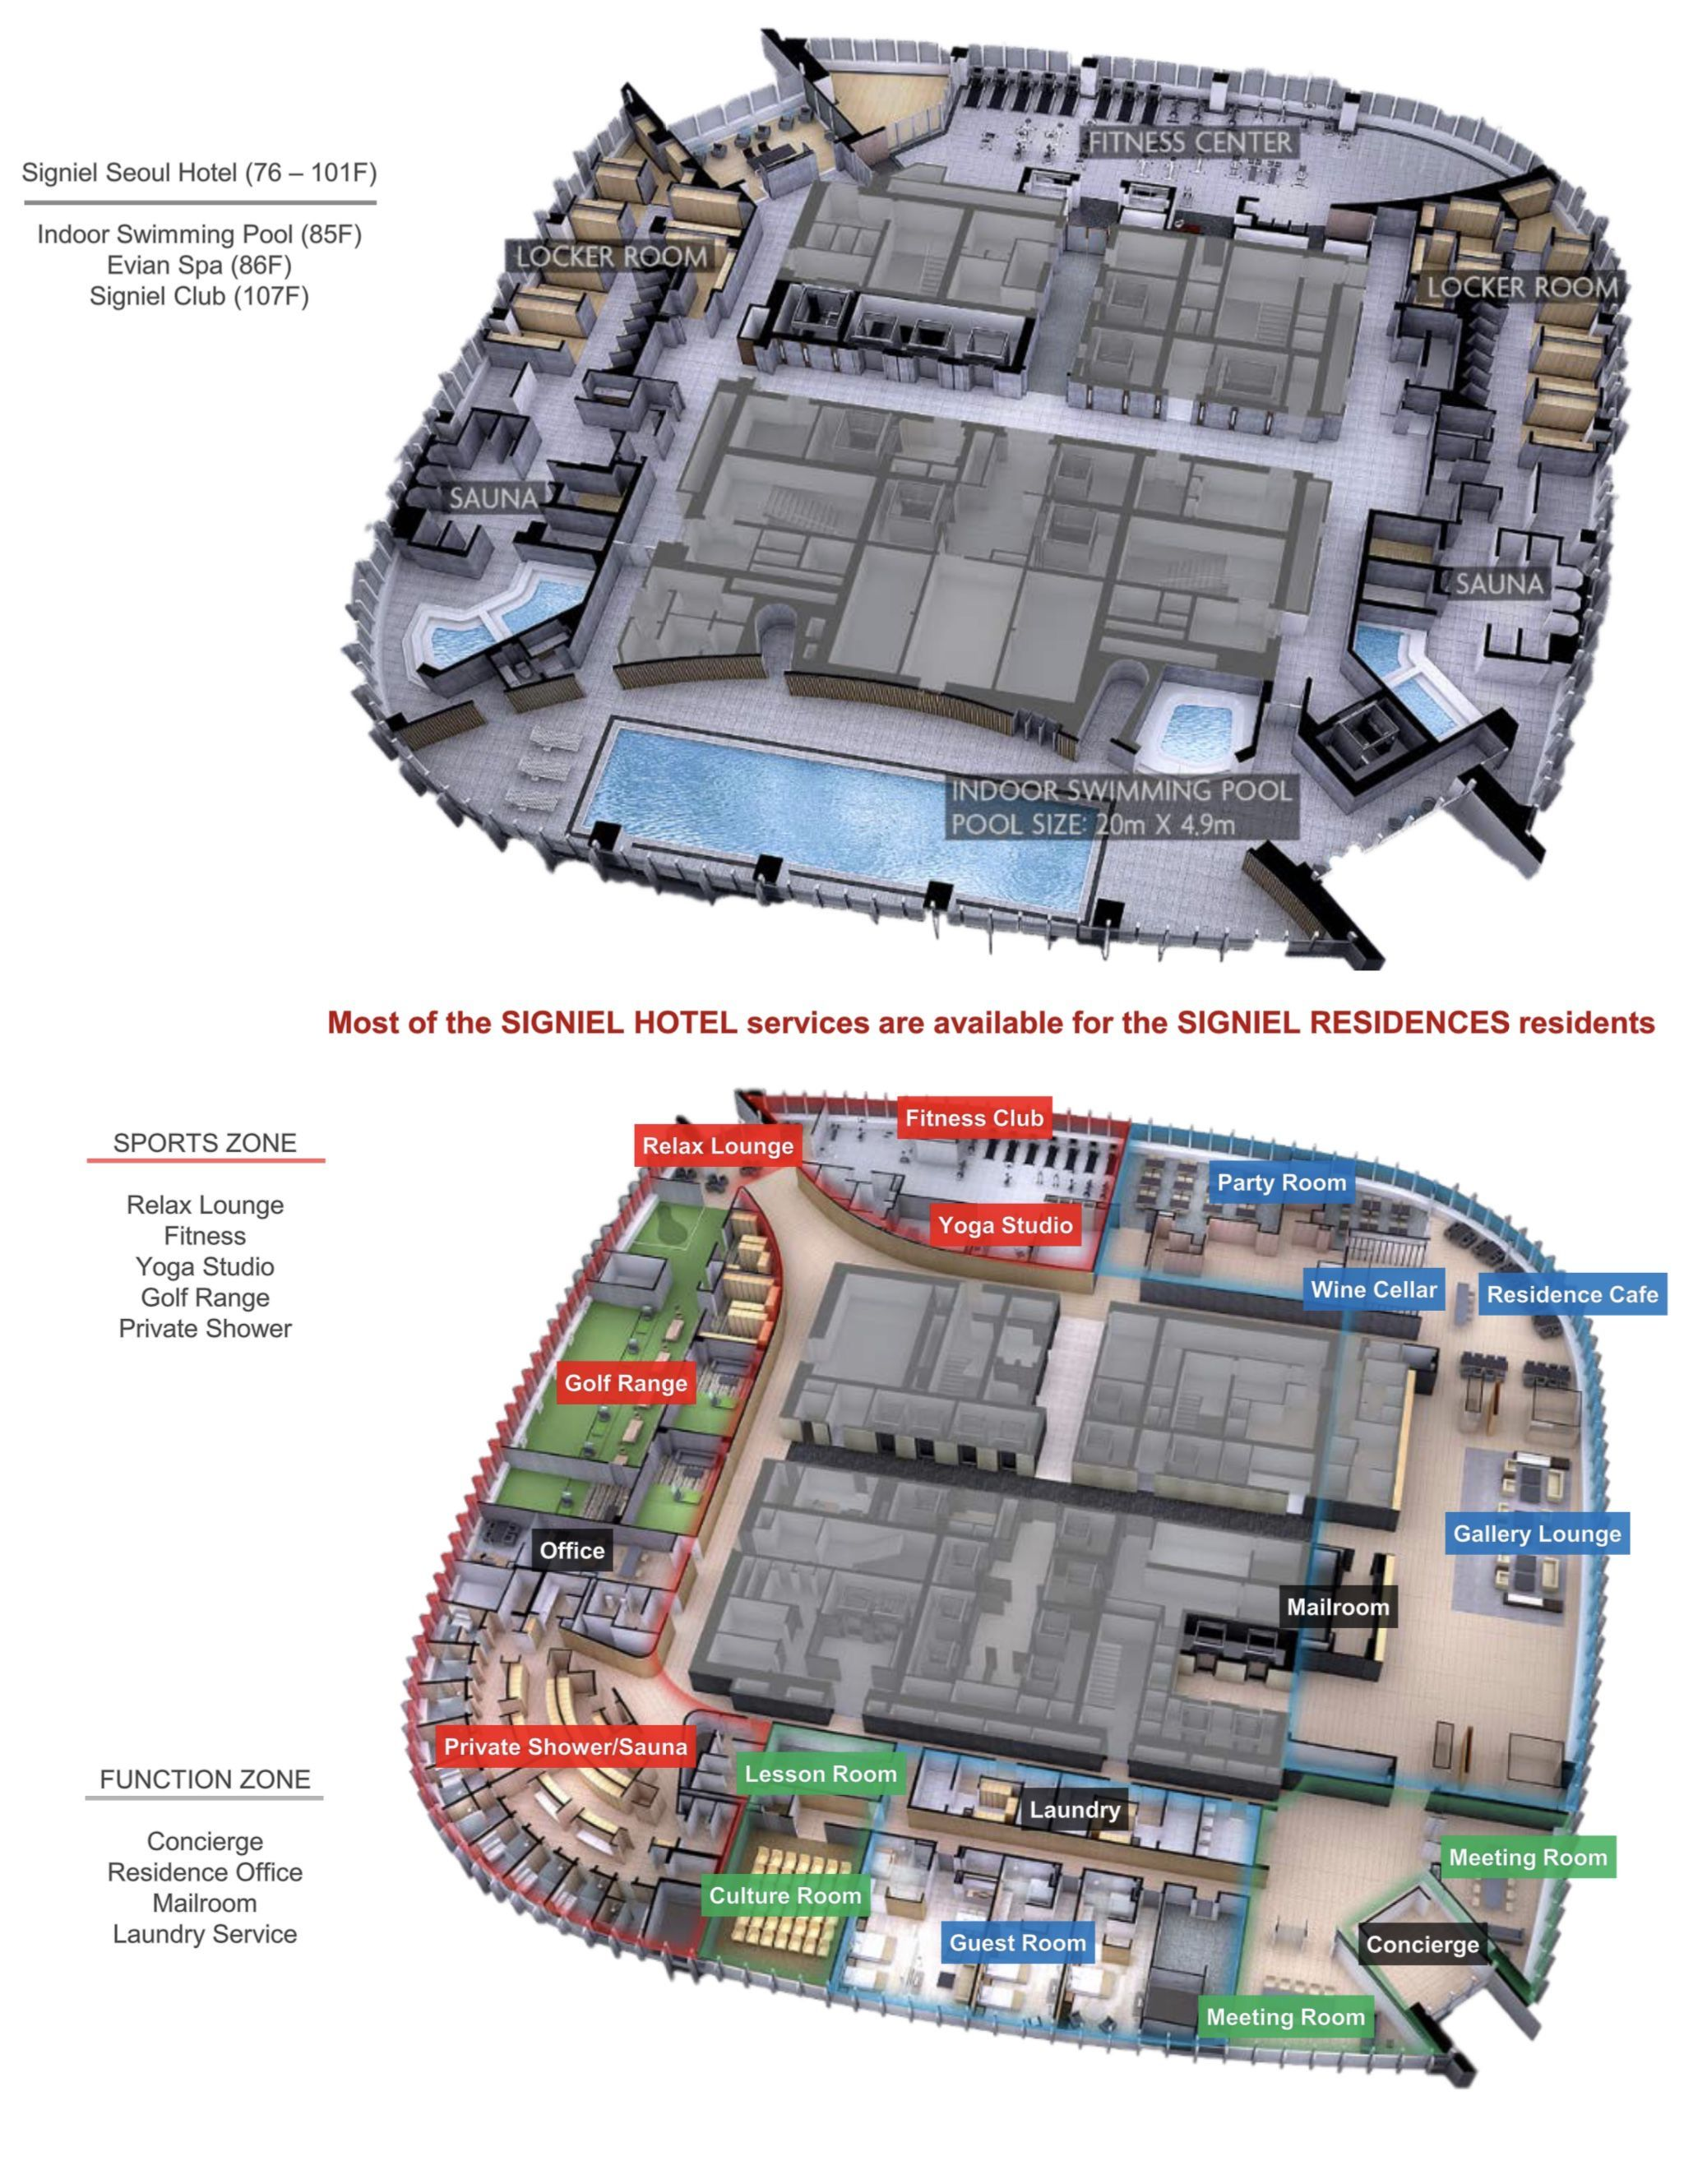 Pin By J I H A E On Hotel Layout Plan Hotel Plan Indoor Swimming Pools Hotel Services